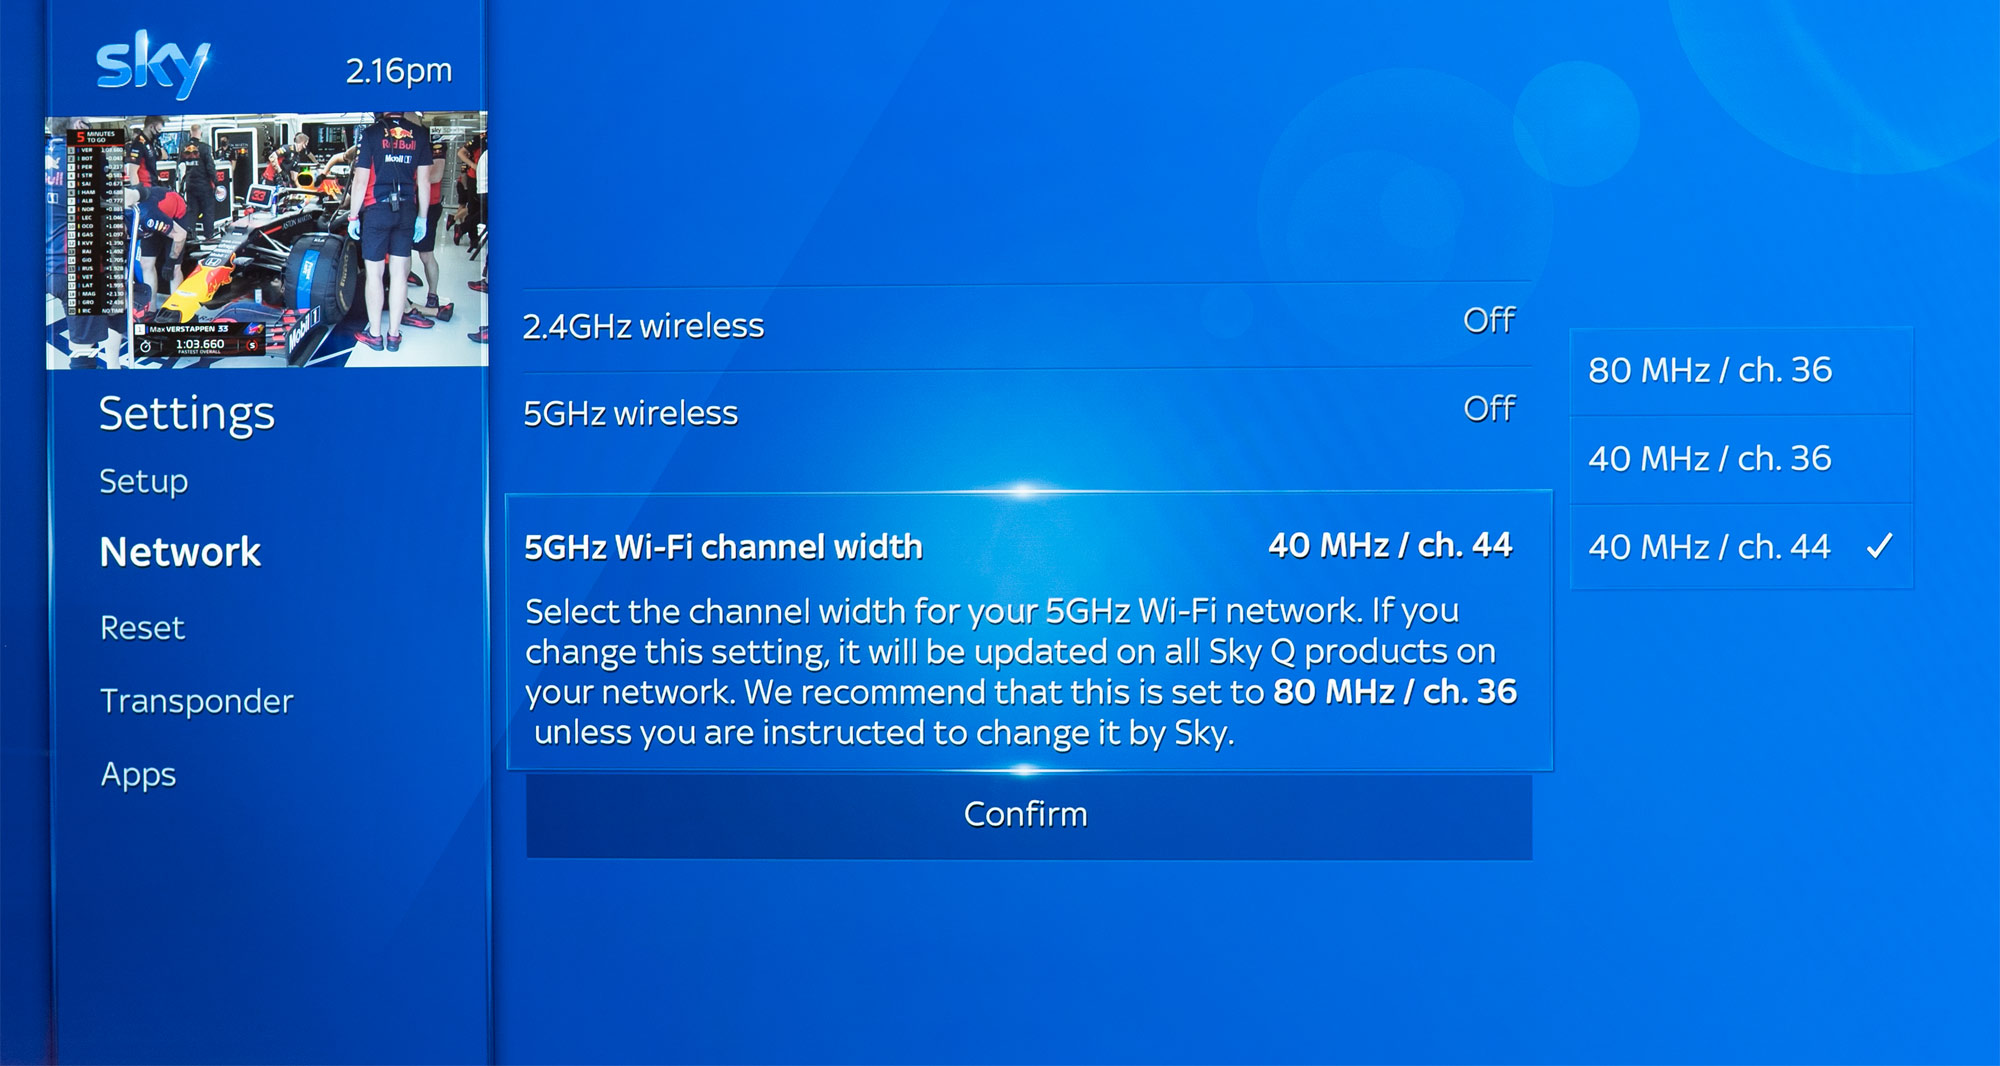 How to turn off Sky Q WiFi